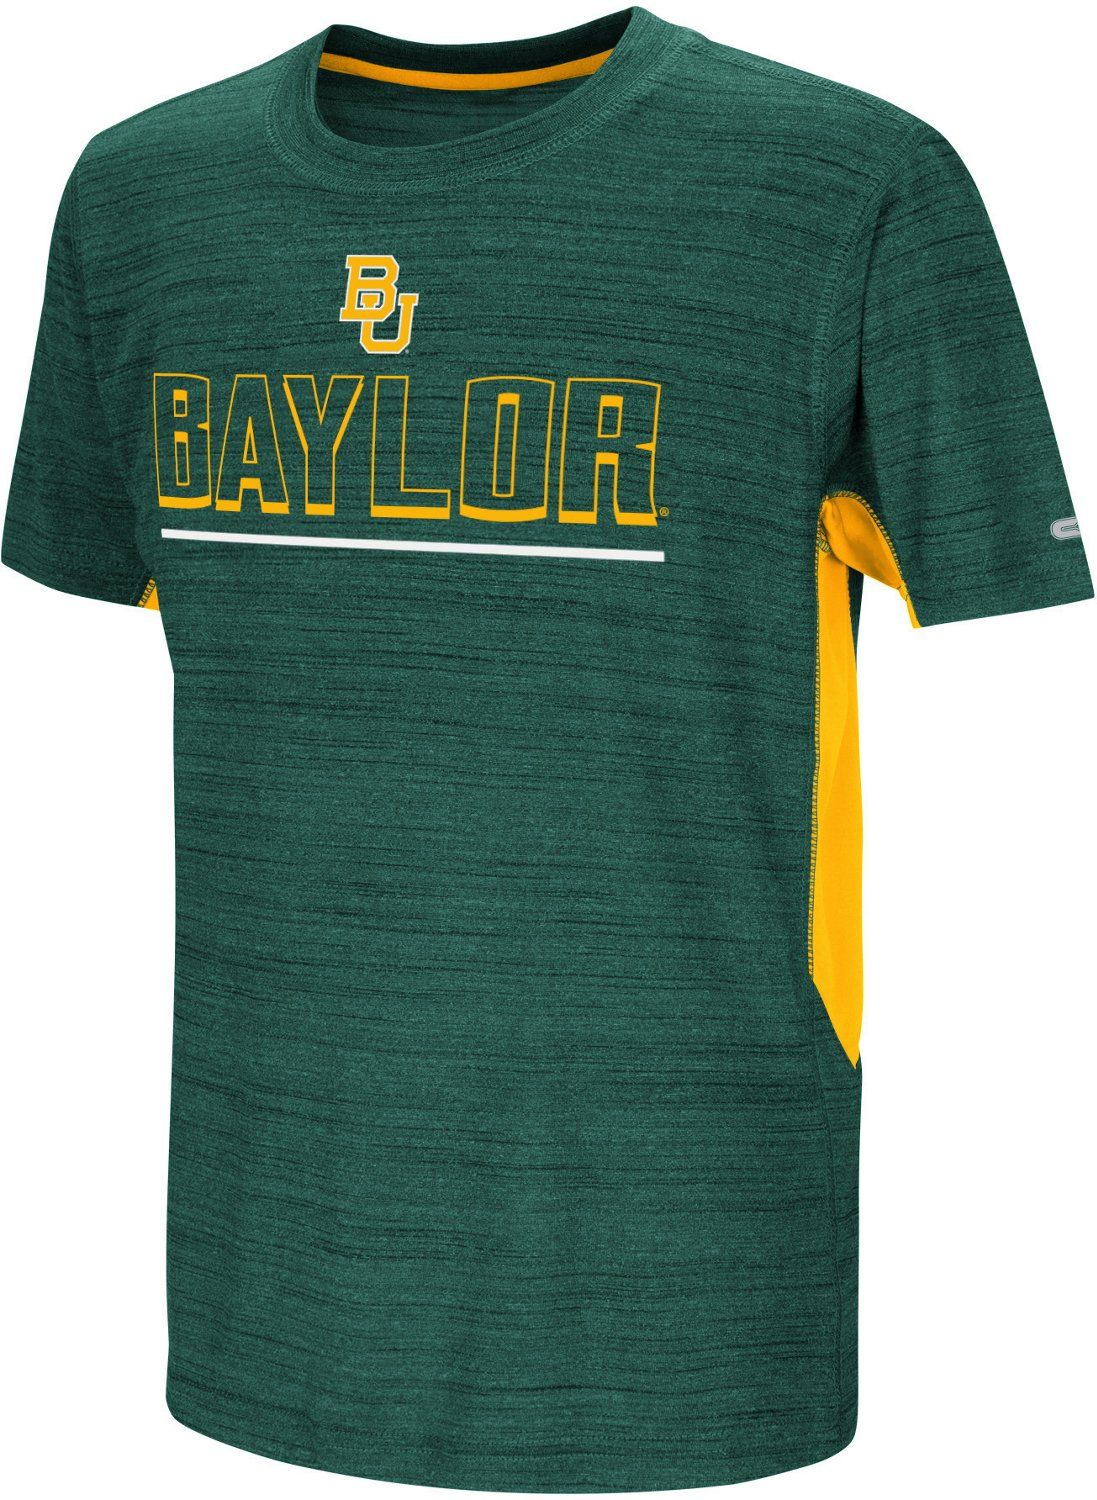 Colosseum Athletics Kids' Baylor University Over The Fence T-shirt